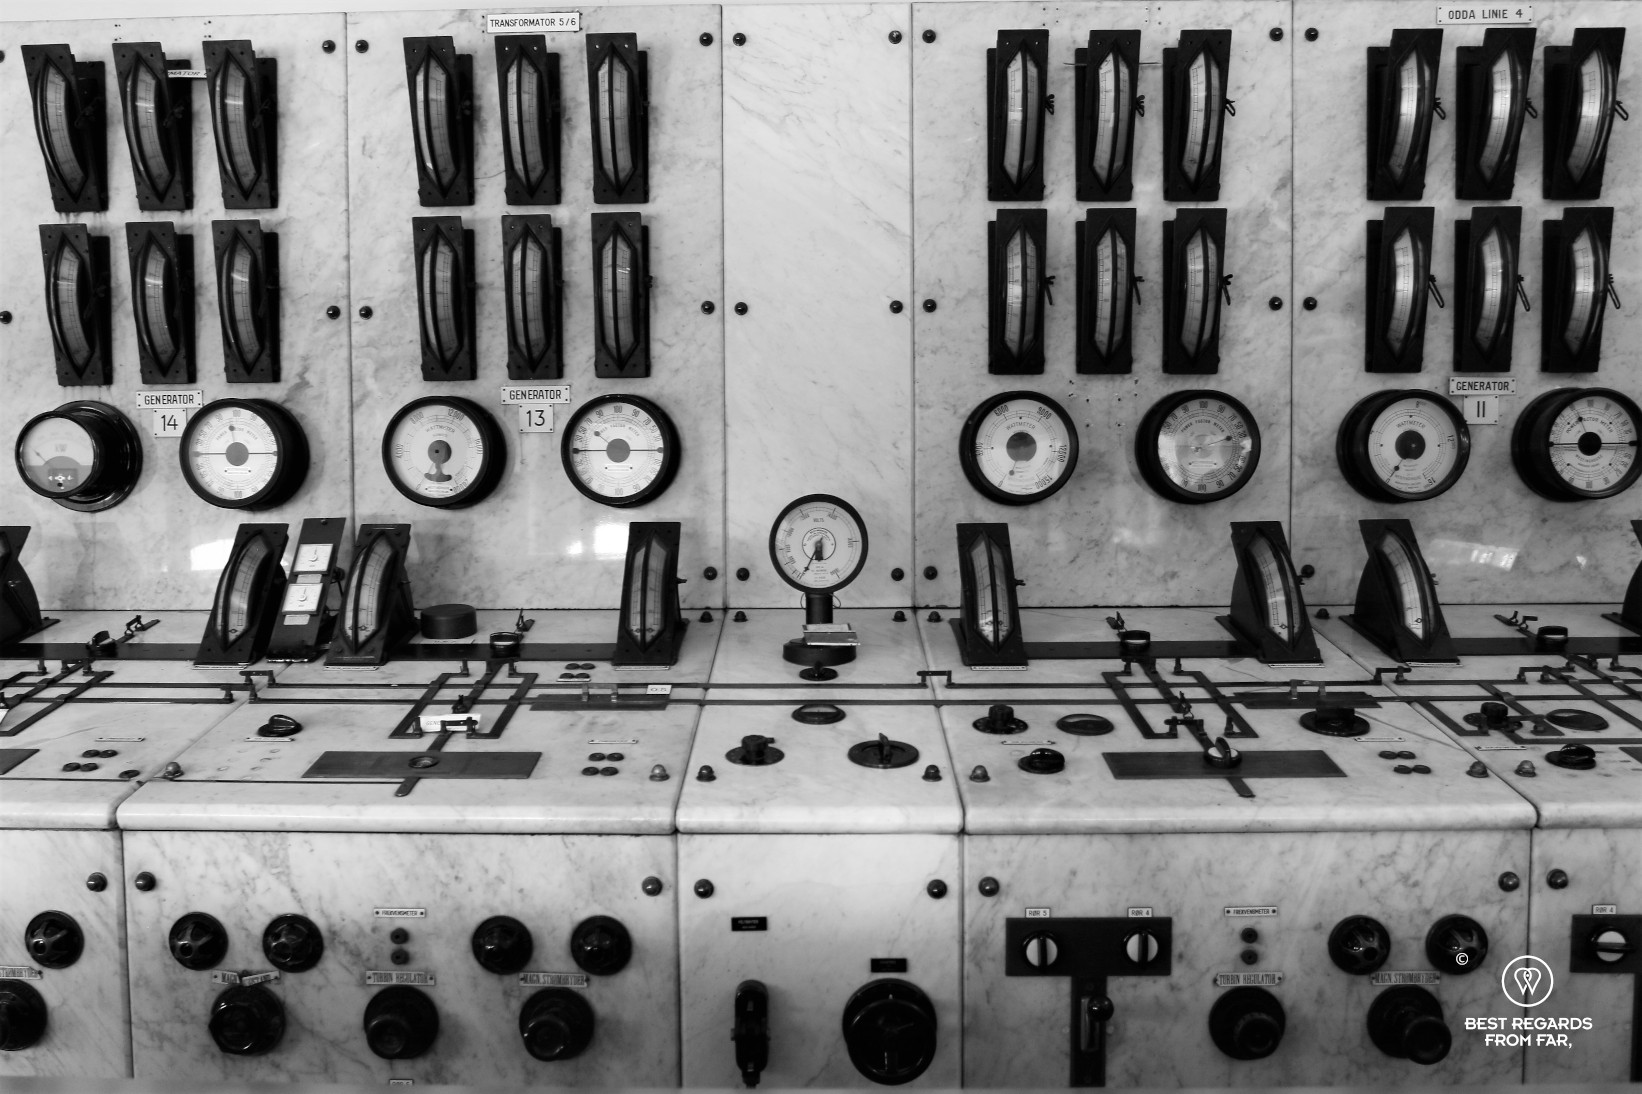 The control room of the Norwegian Museum of Hydropower and Industry, Tyssedal, Norway